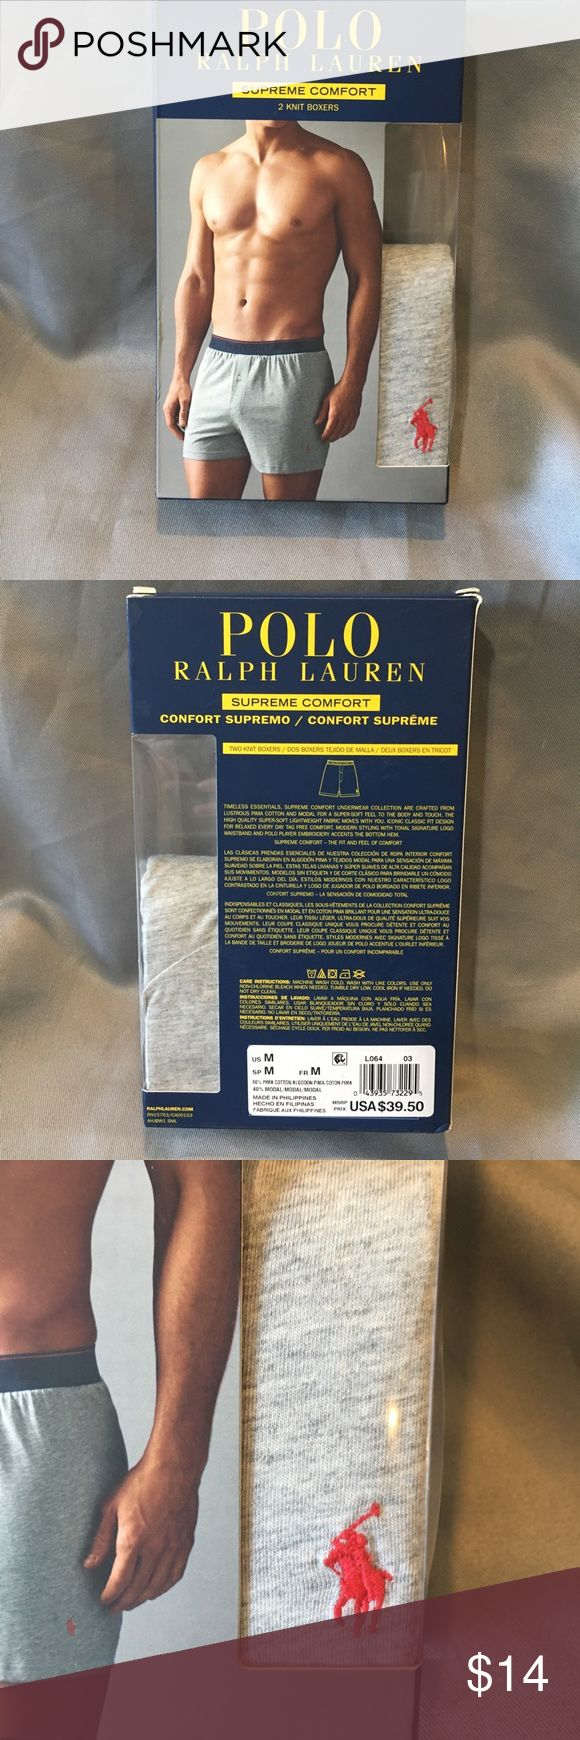 NWT POLO Ralph Lauren 1 Pair Knit Boxers NWT POLO Ralph Lauren 1 Pair Knit Boxers. Supreme comfort. This was a 2 pack that is missing 1 pair. You will only receive 1 pair. Polo by Ralph Lauren Underwear & Socks Boxers